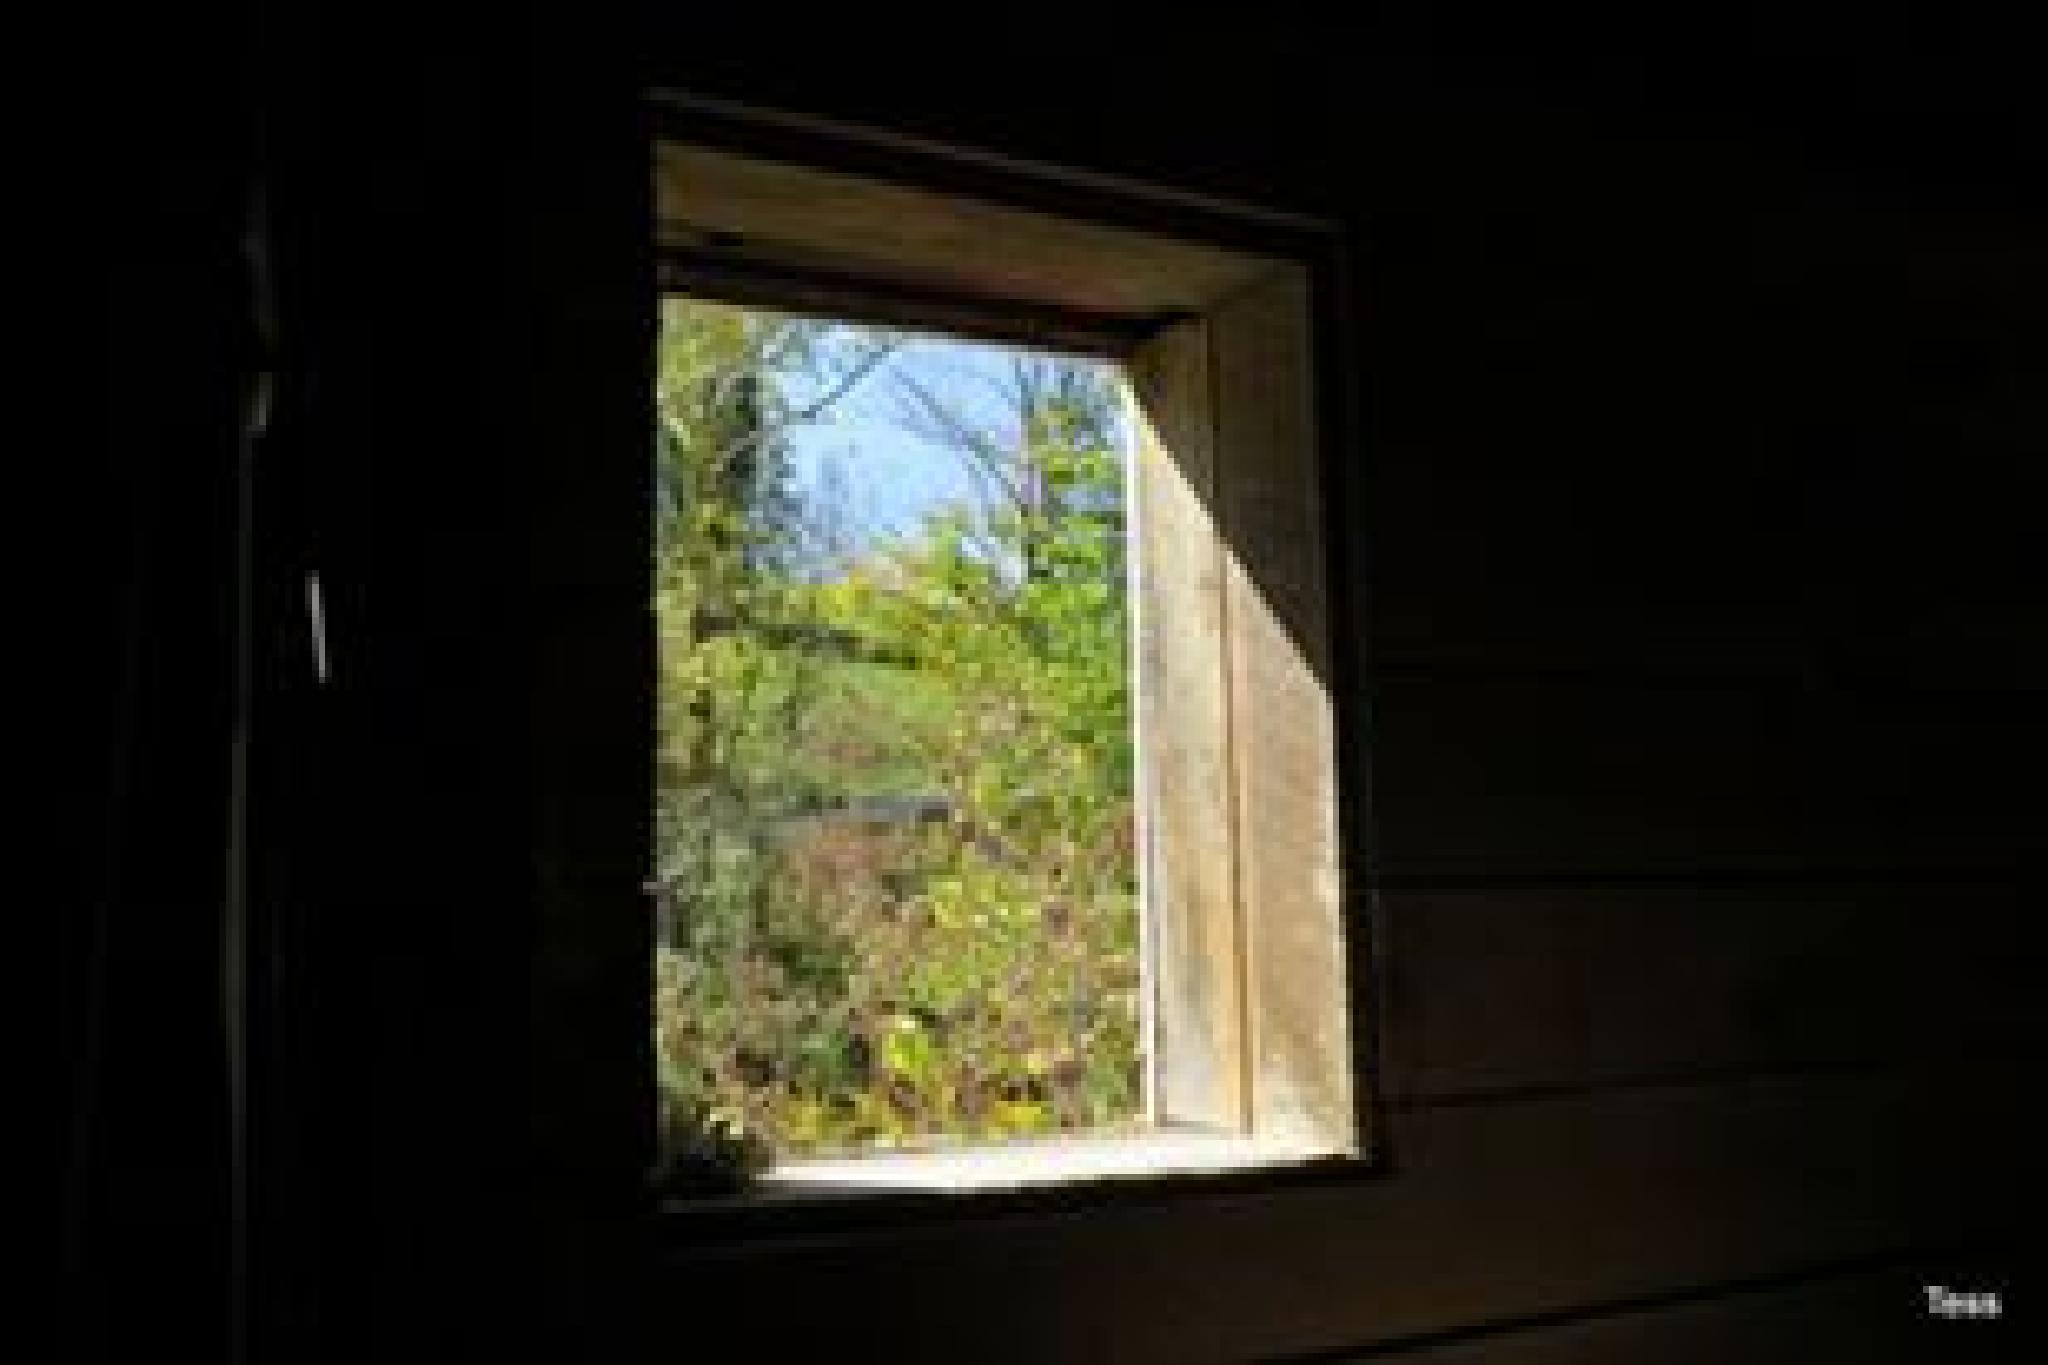 A window into Spring by teresa.ehling